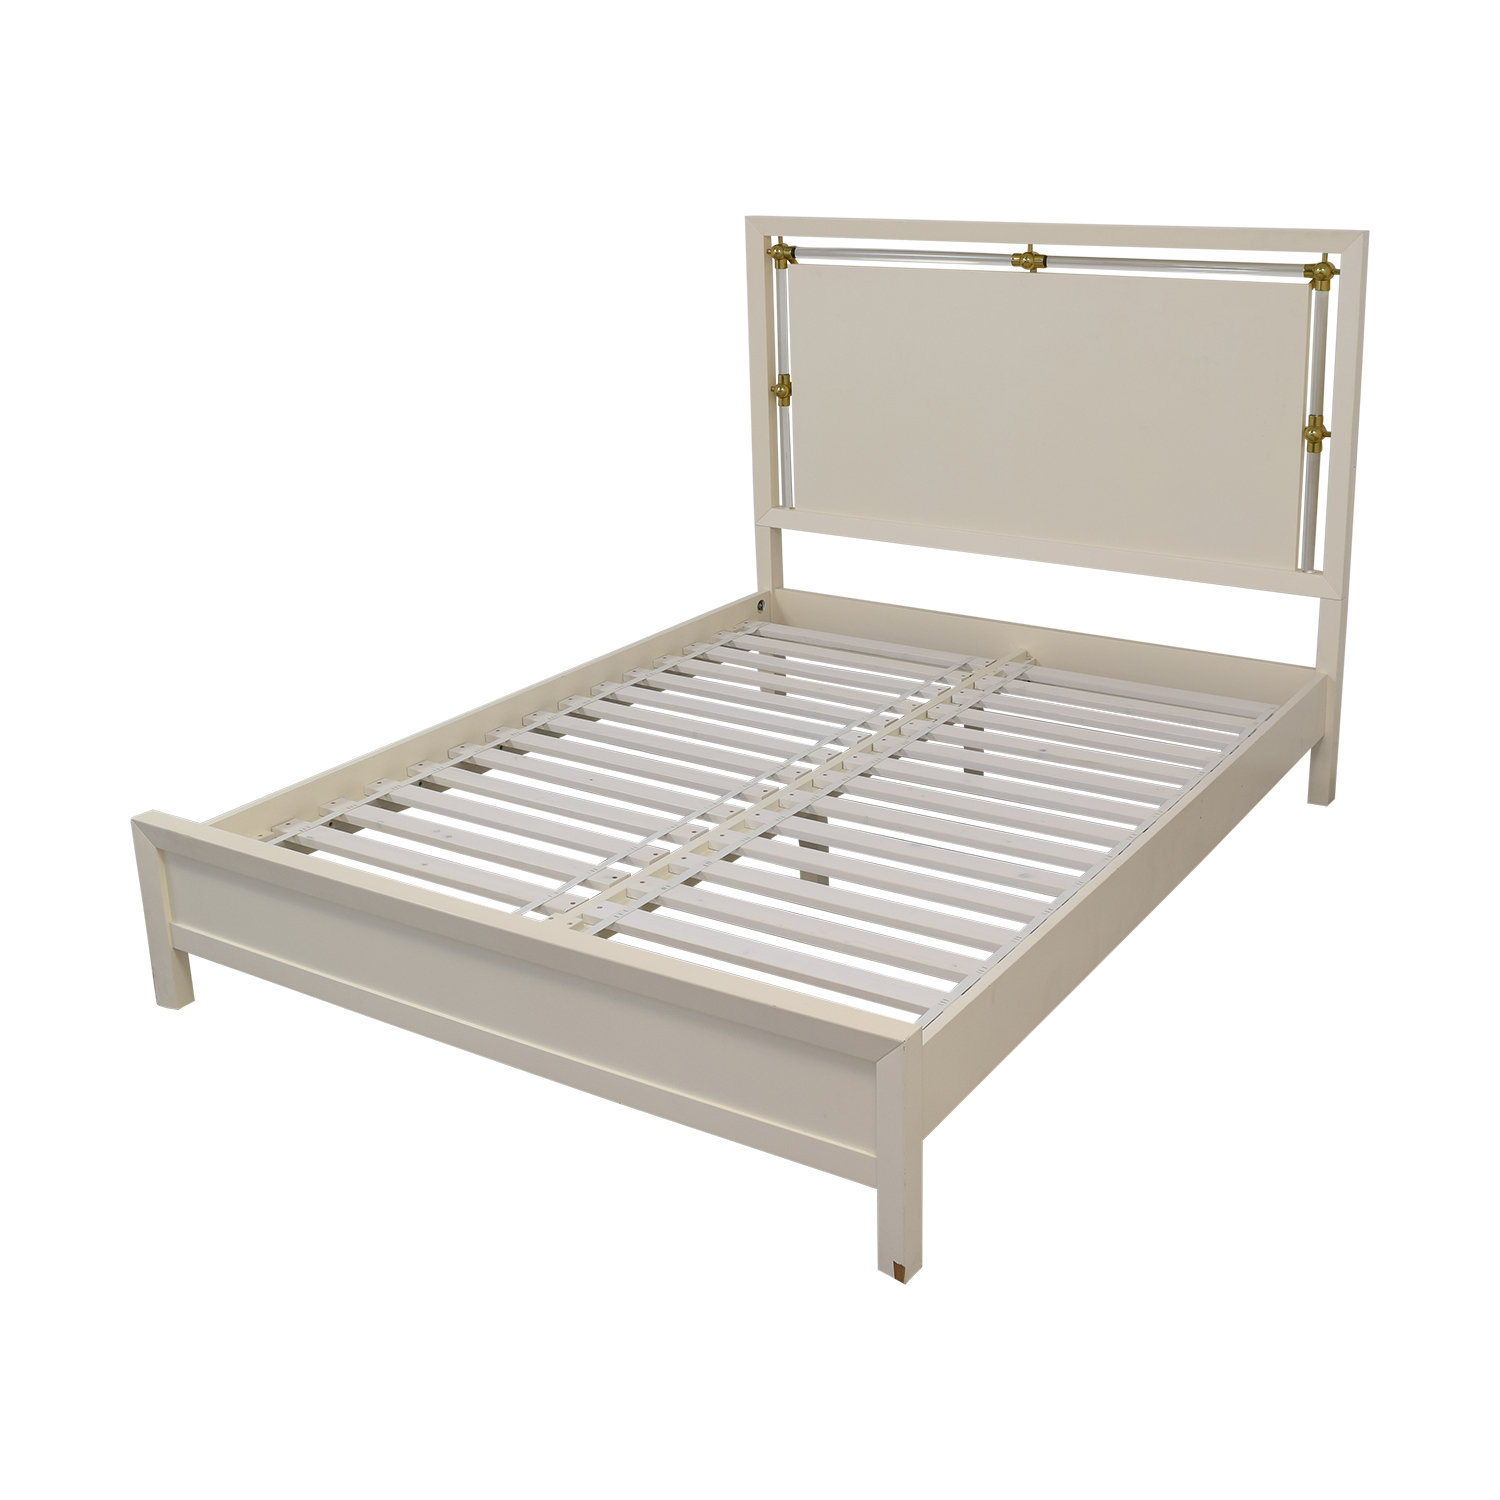 Anthropologie Anthropologie Merriton Queen Bed dimensions